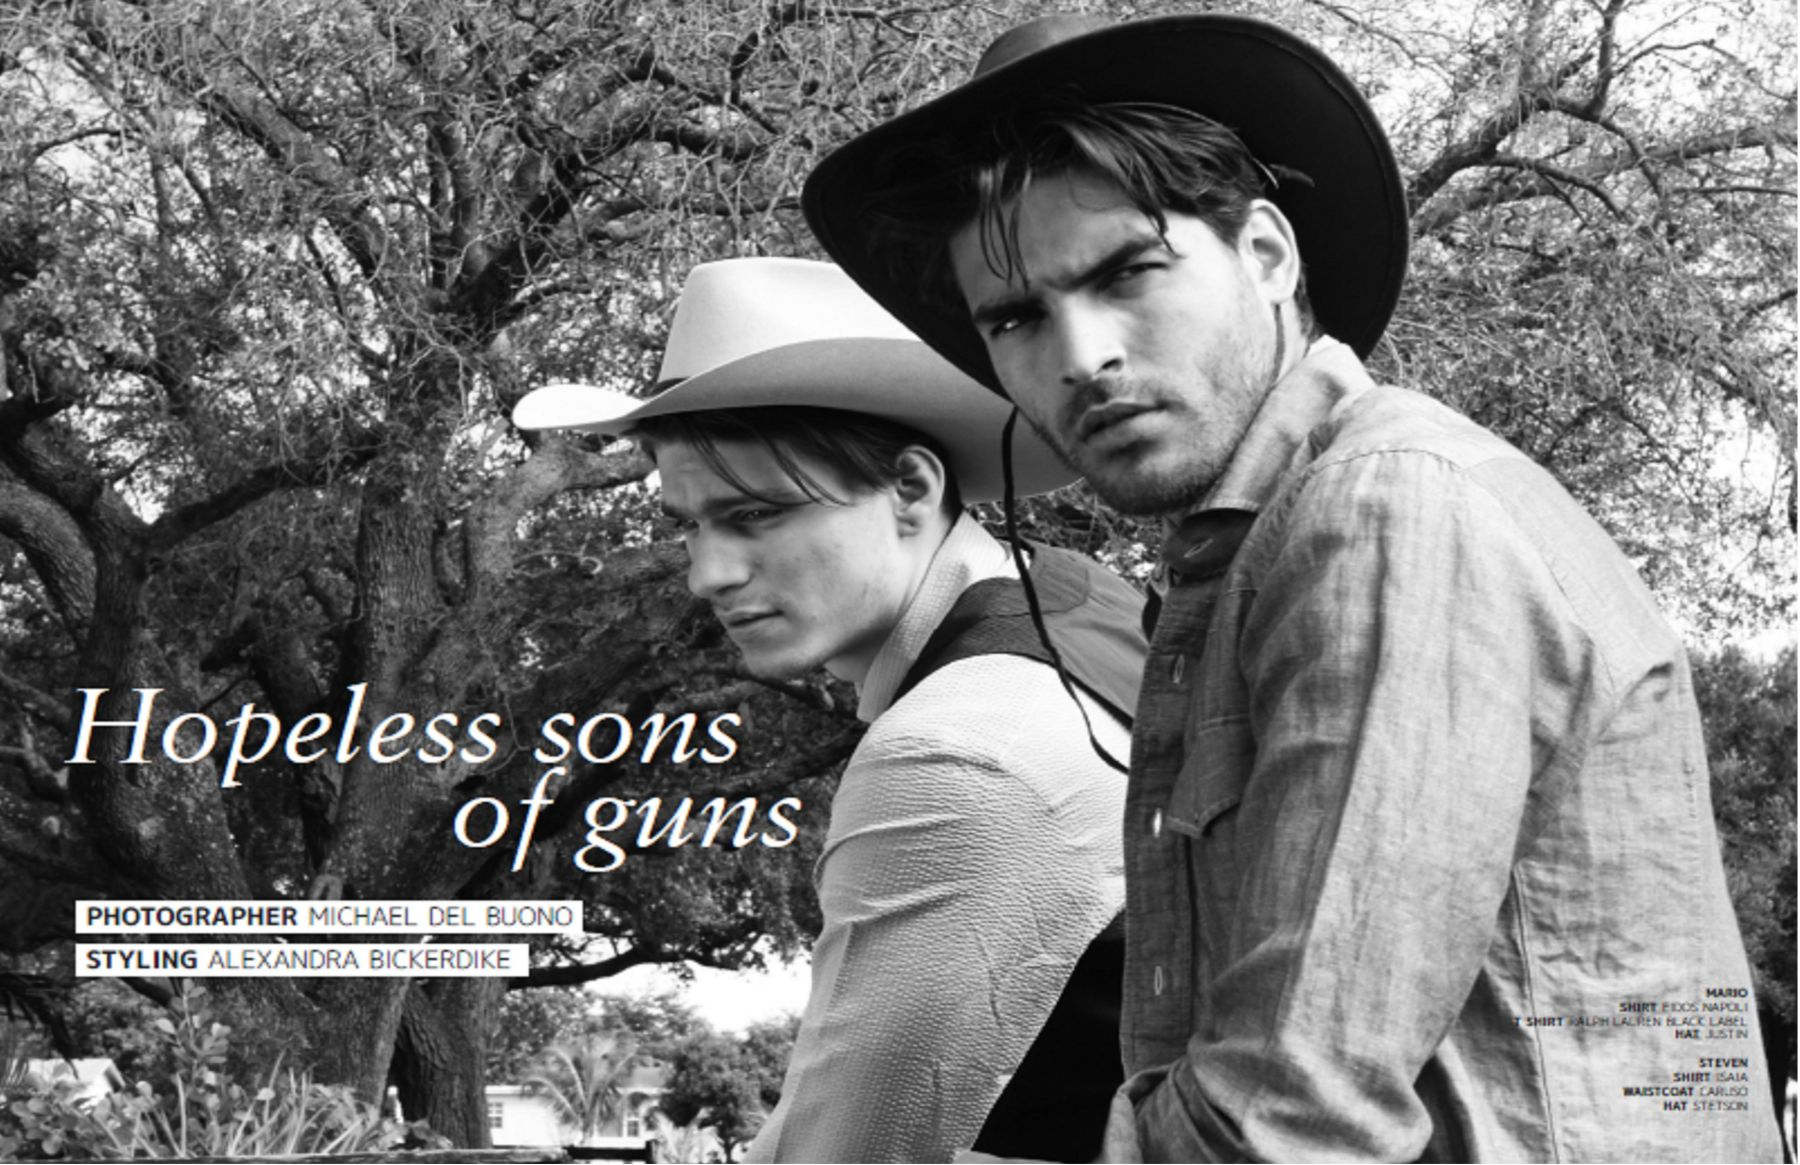 HOPLE SONS OF GUNS for JON MAGAZINE LONDON by MICHAEL DEL BUONO